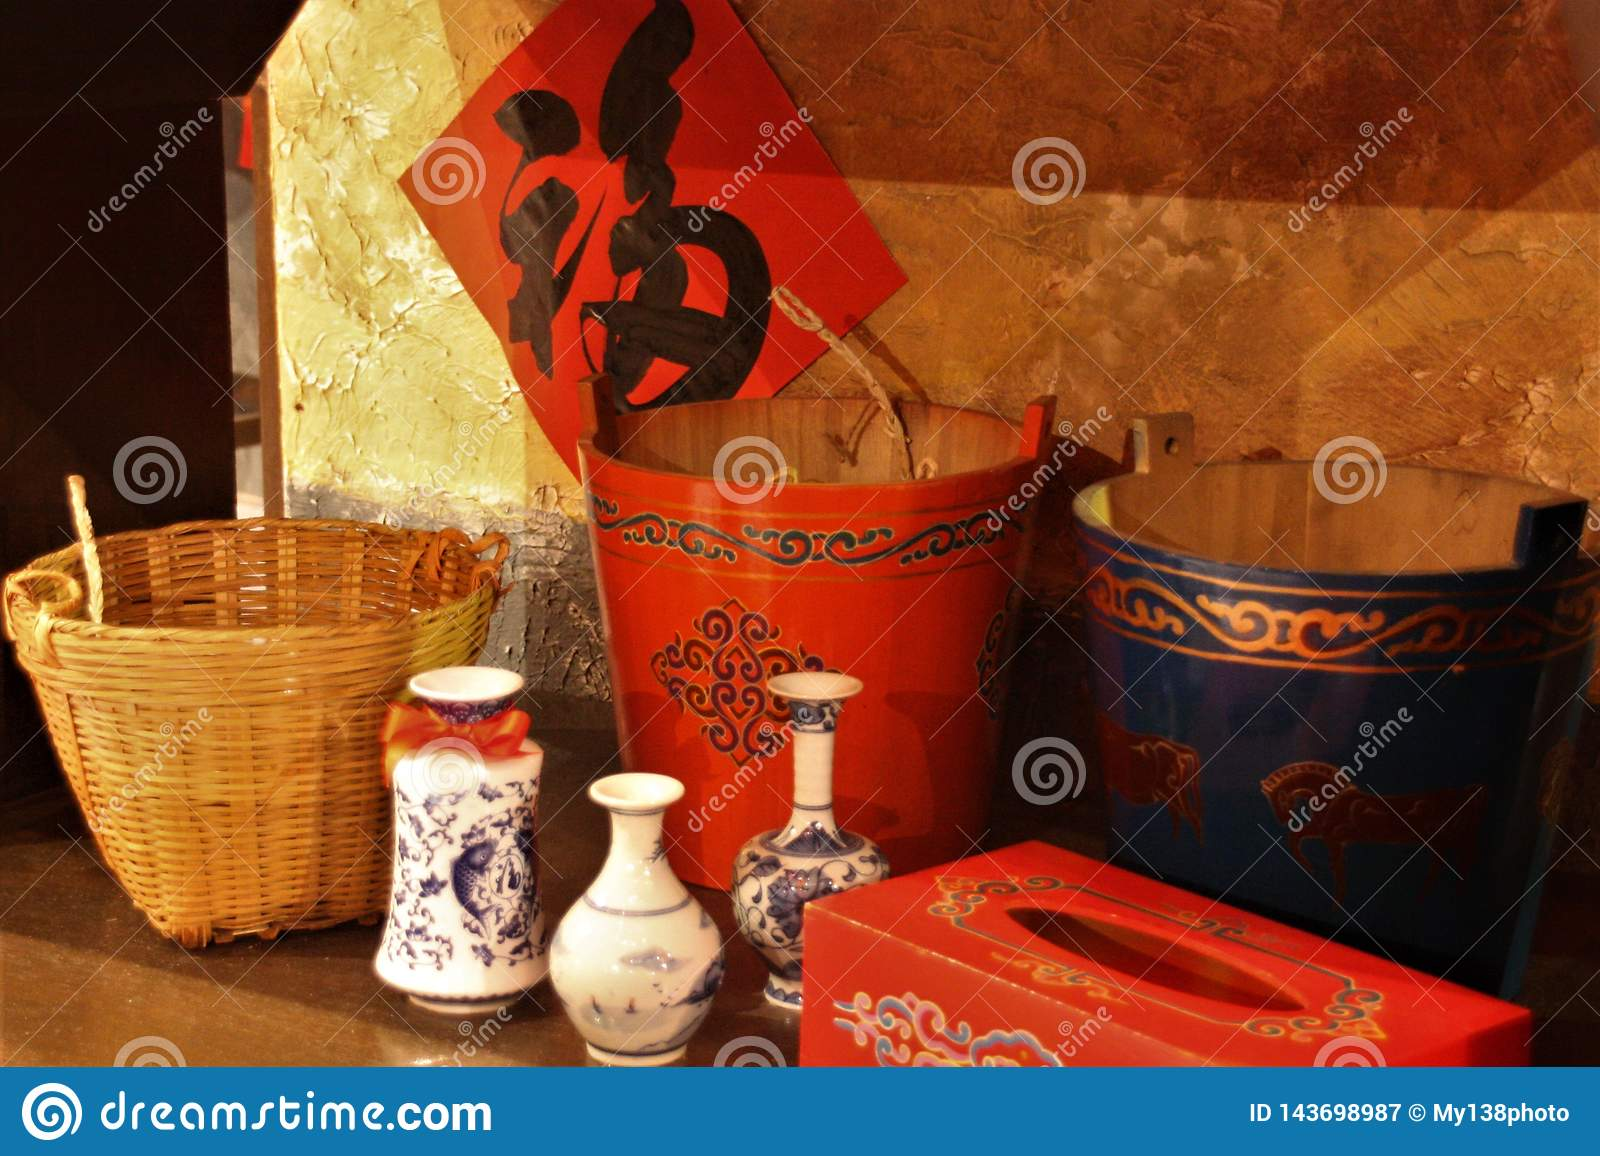 Chinese classic utensils baskets and pail